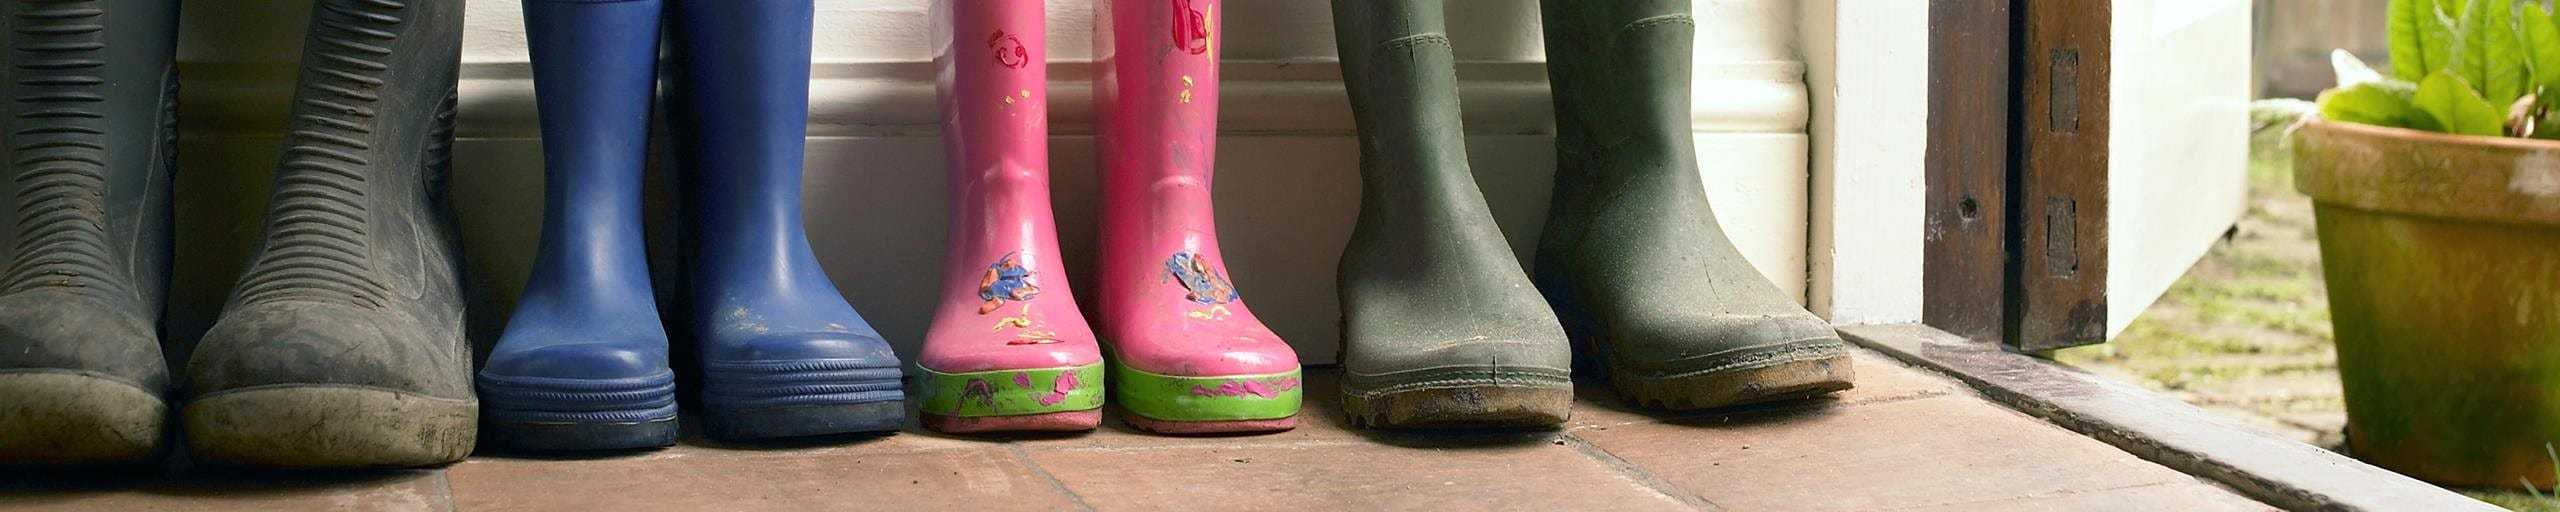 Rubber boots in various colors.